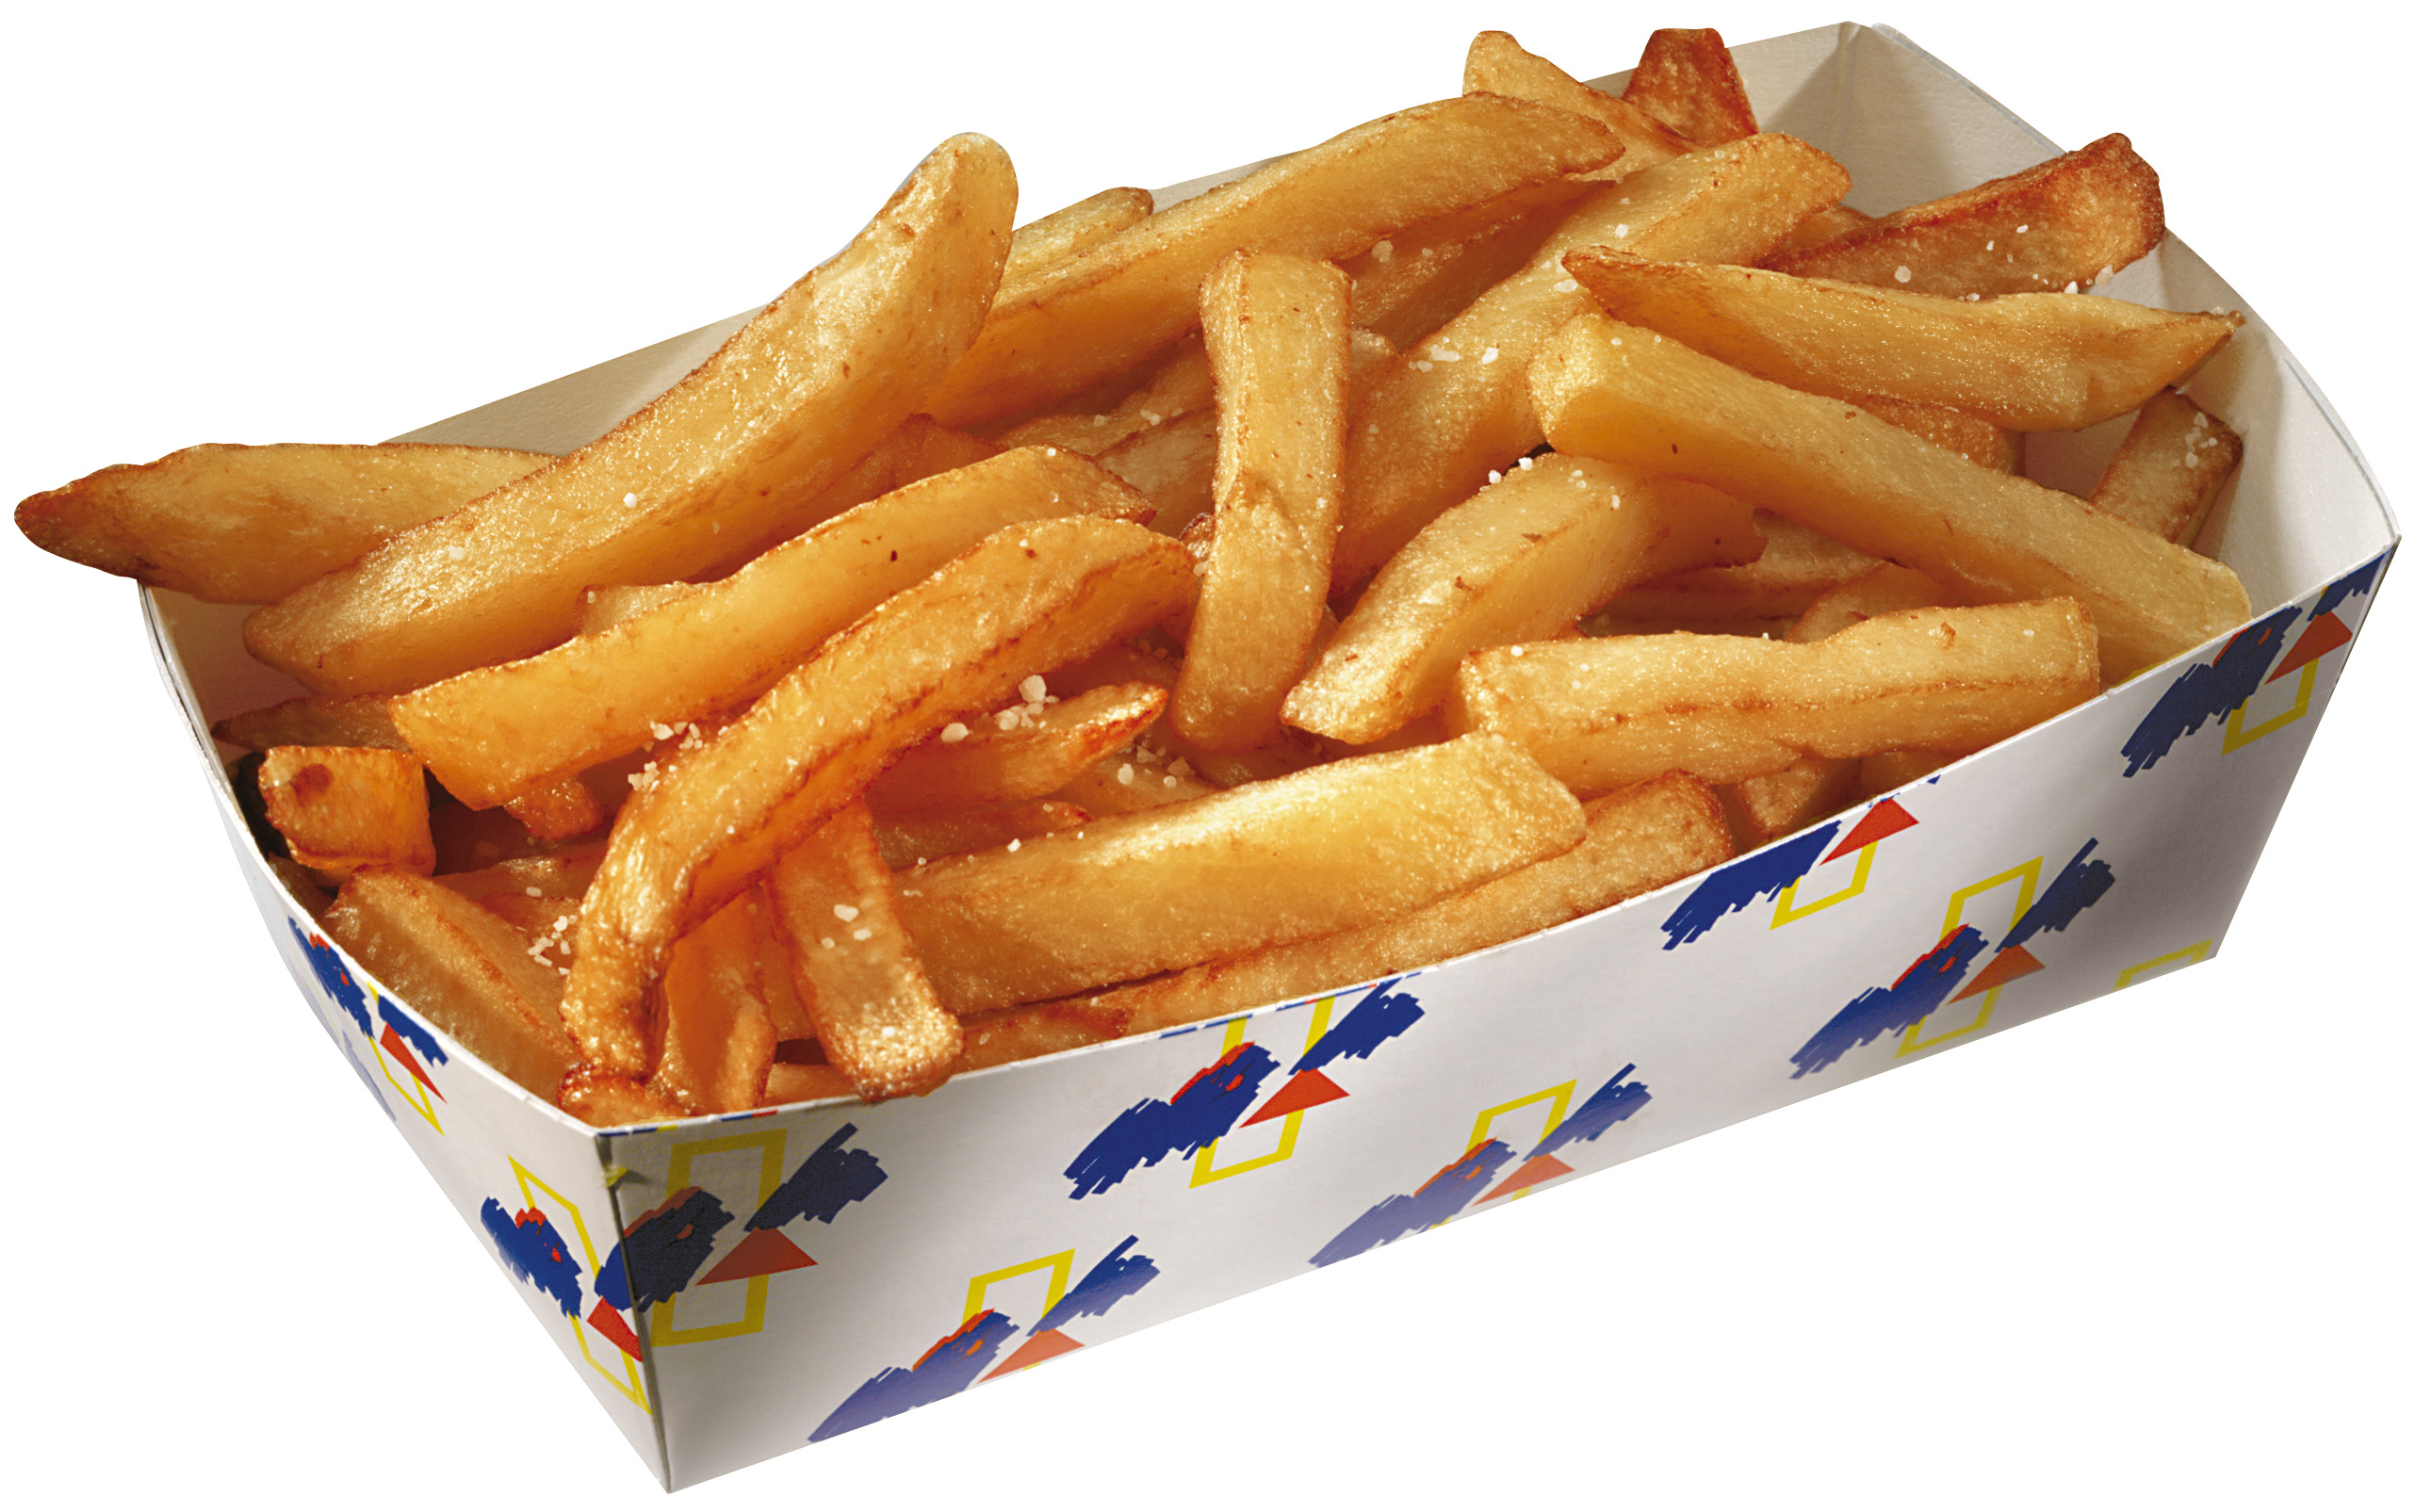 Pommes Frites Circle S Related Keywords - Pommes Frites Circle S Long ...